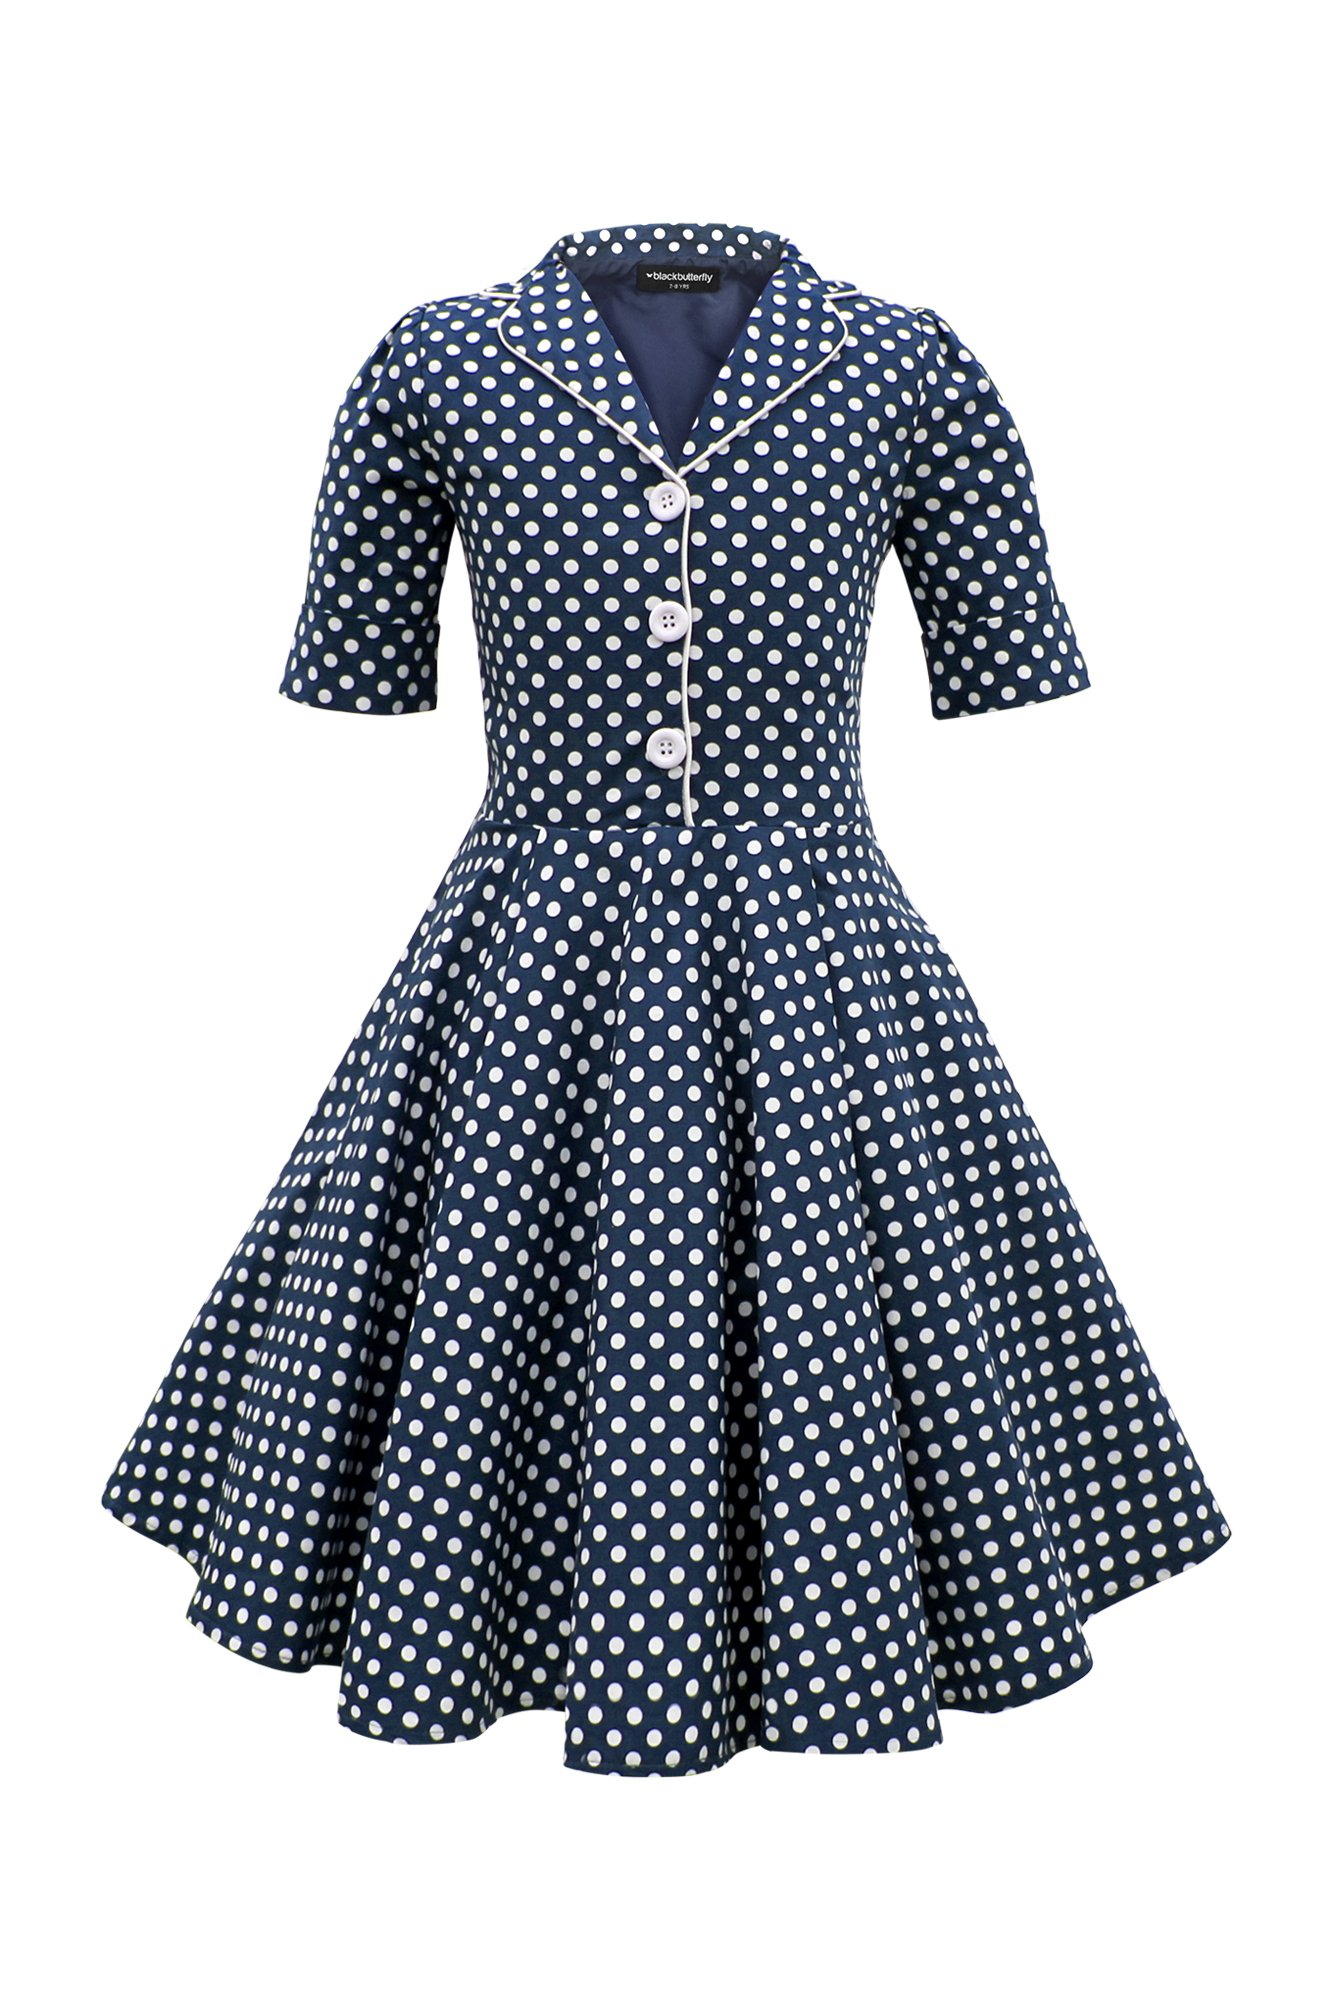 Blackbutterfly Kids Sabrina Vintage Polka Dot 50 S Dress